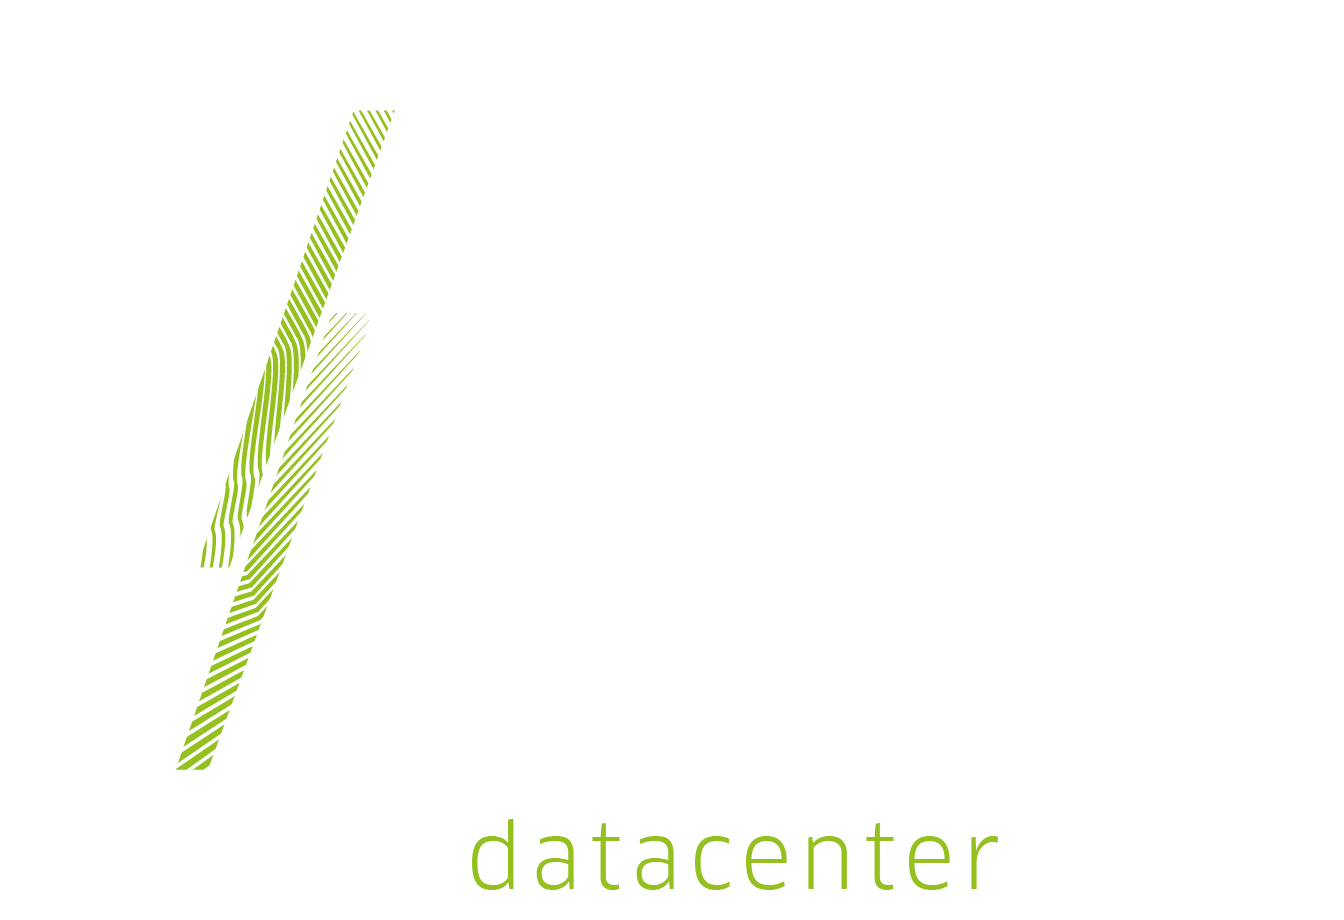 viridicon datacenter GmbH